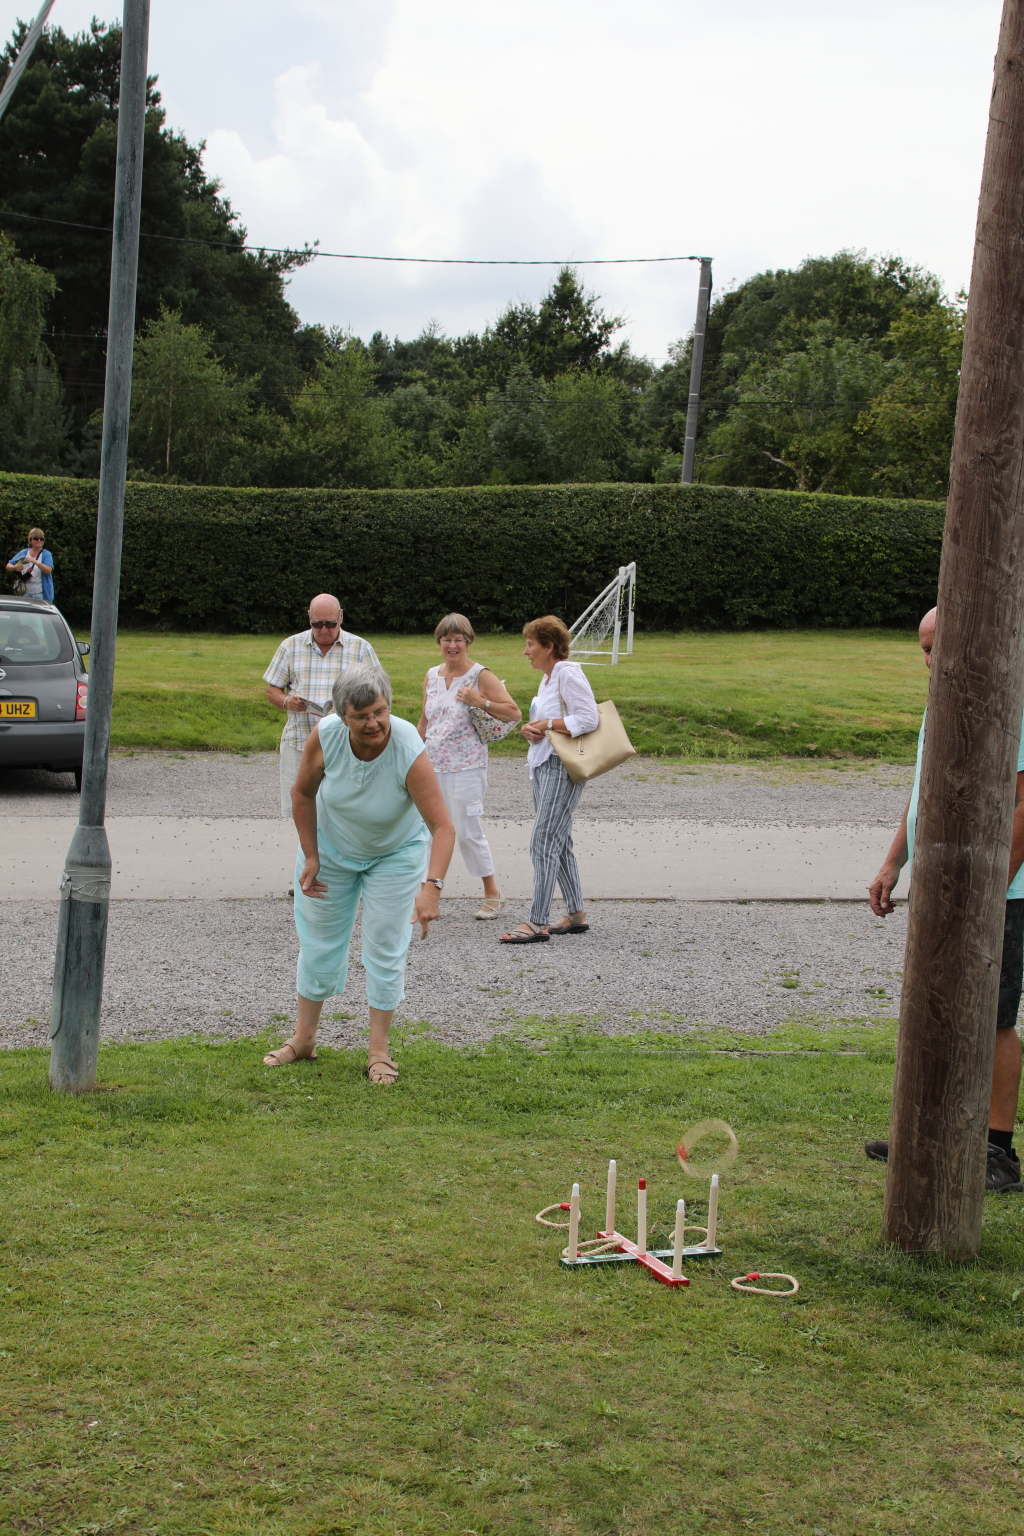 Anita and Quoits